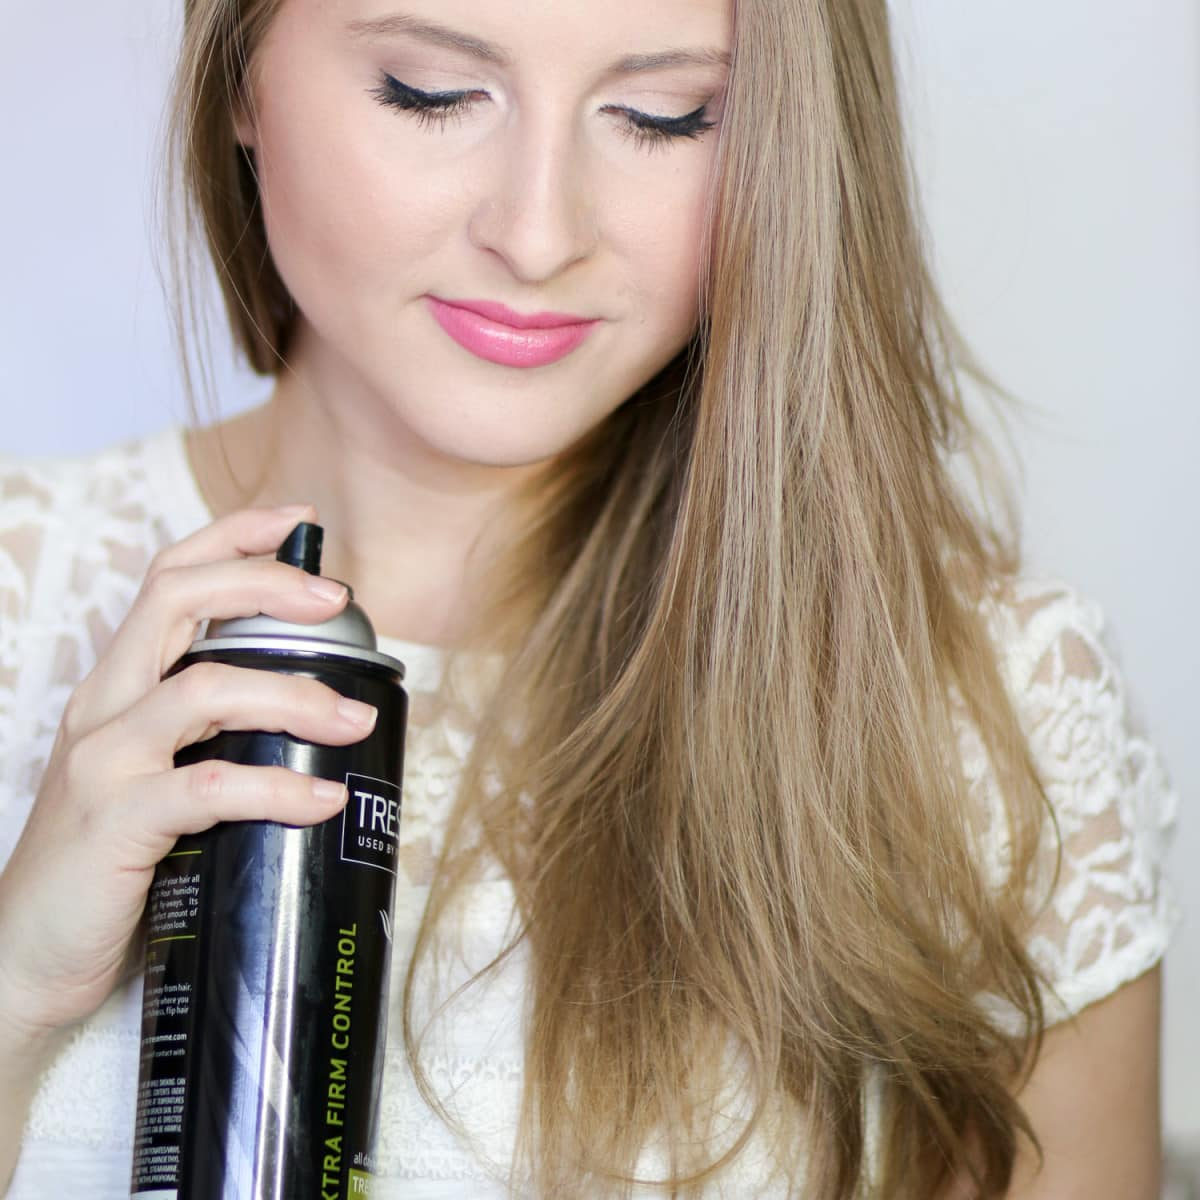 Learn how to fake a salon blowout at home with this easy step-by-step tutorial!